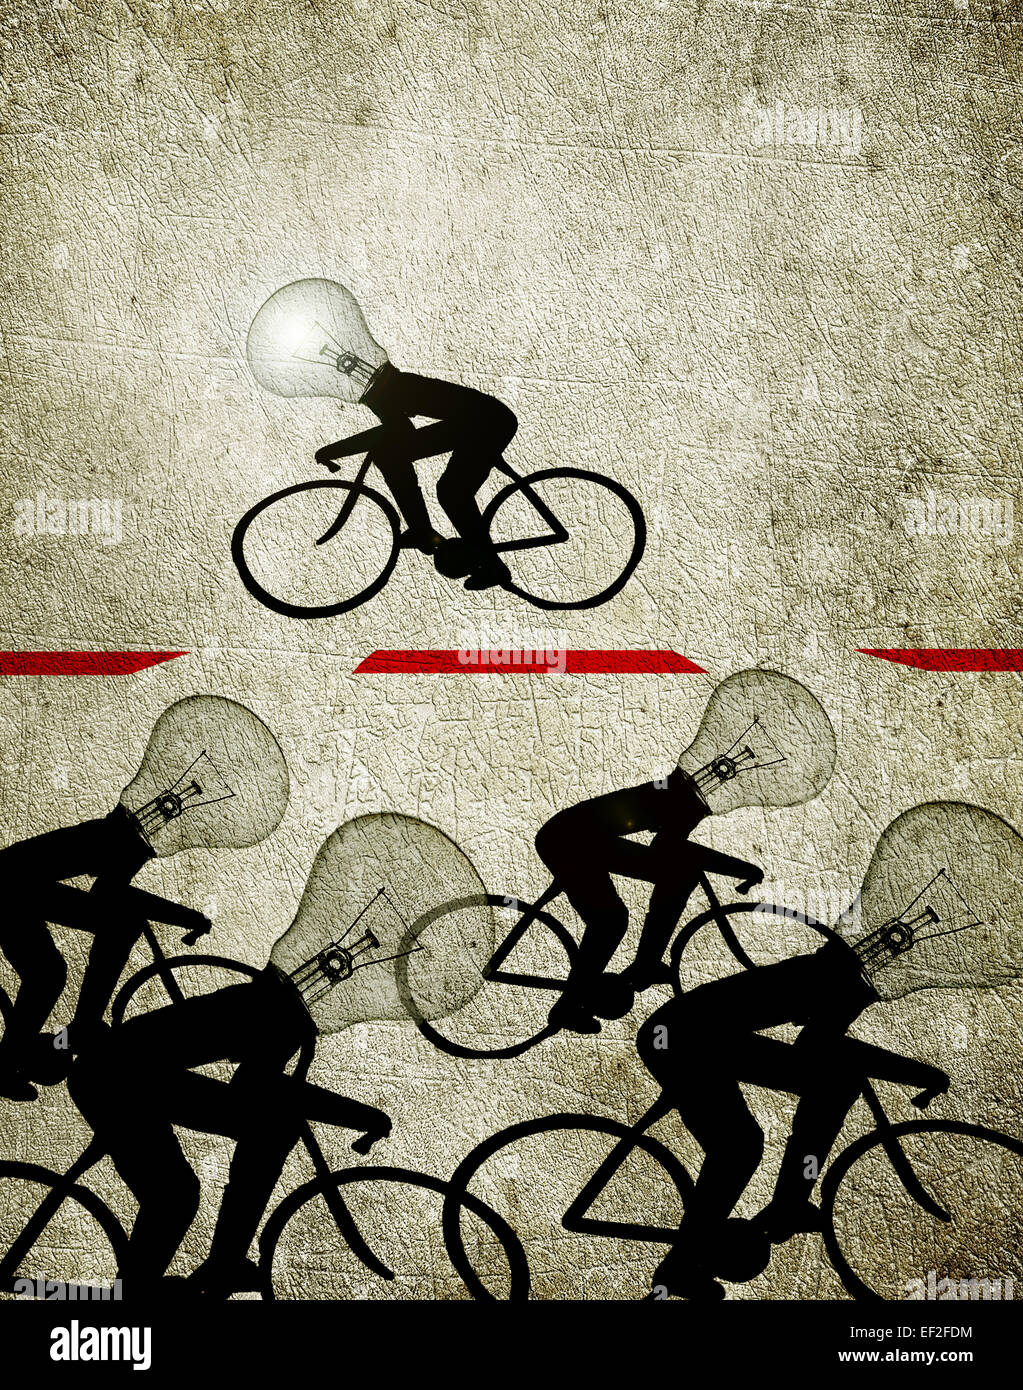 Les cyclistes avec des têtes d'ampoule illustration creativity concept Photo Stock